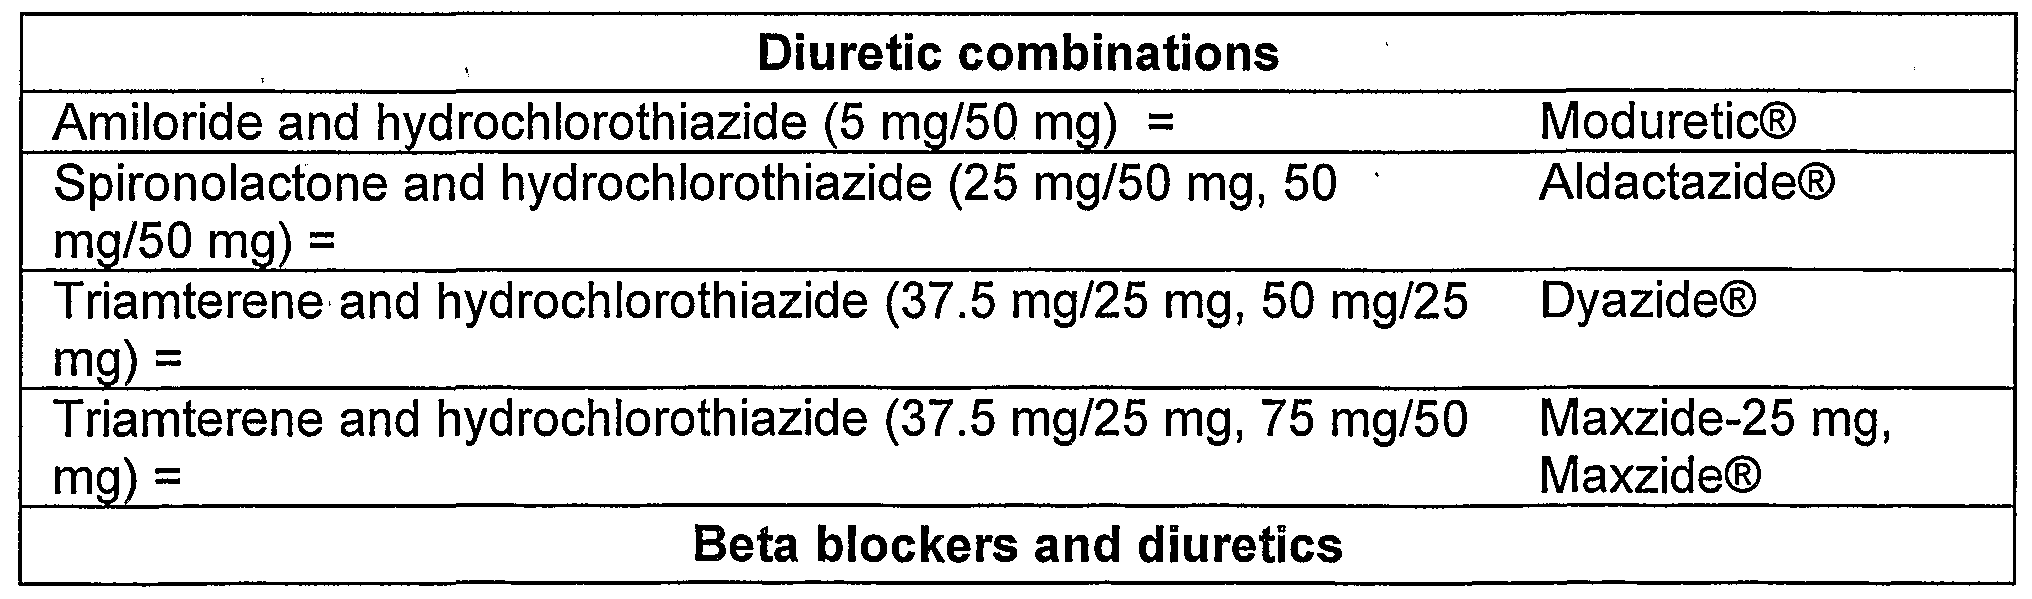 Capoten 25 mg dose.doc - Figure Imgf000015_0001